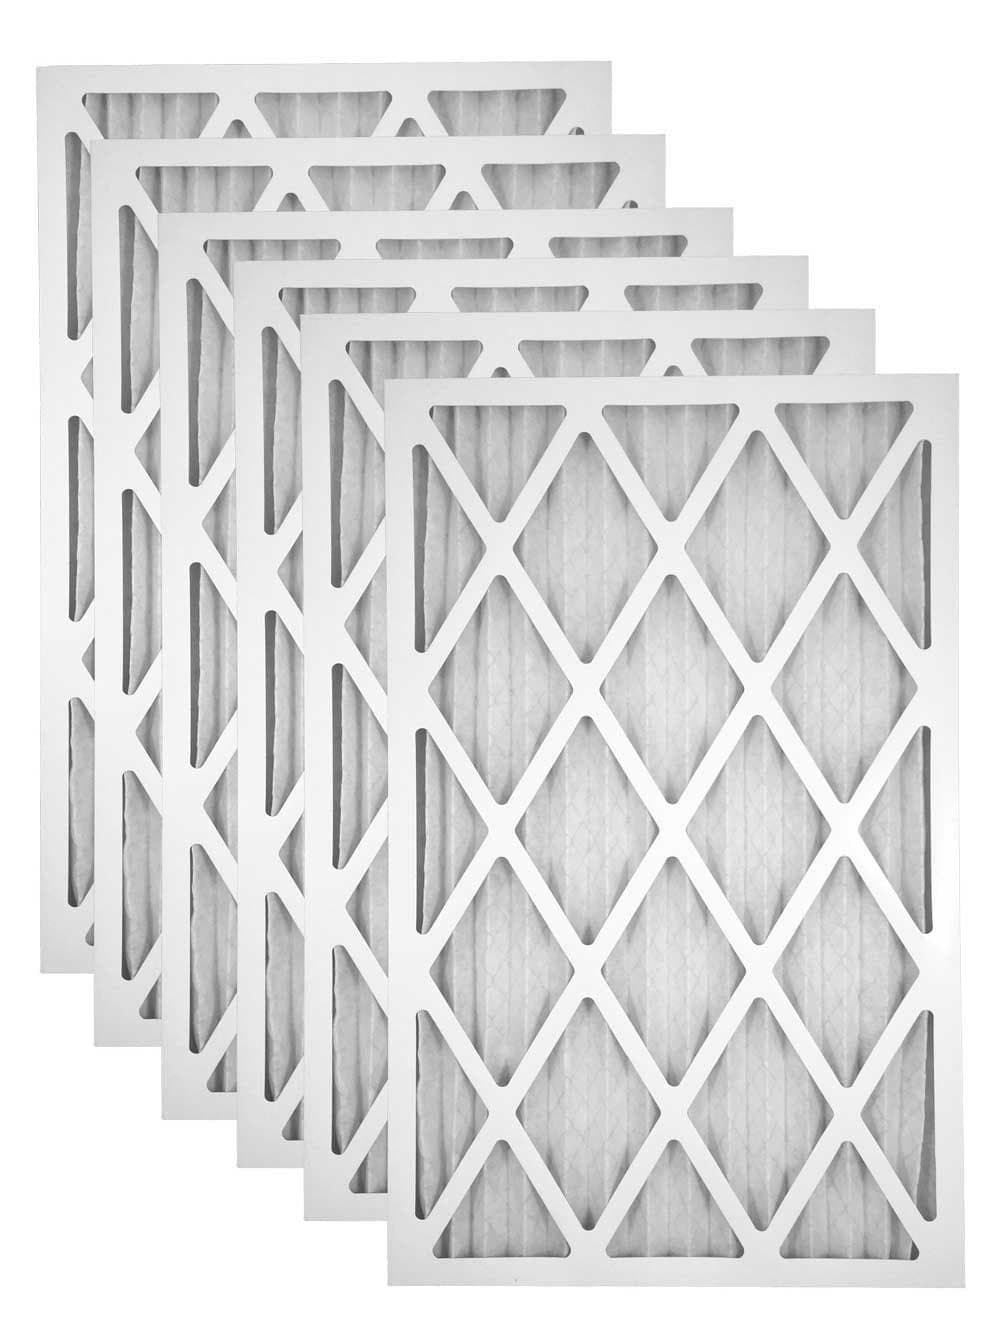 14x15.5x1 Merv 8 AC Furnace Filter - Case of 6